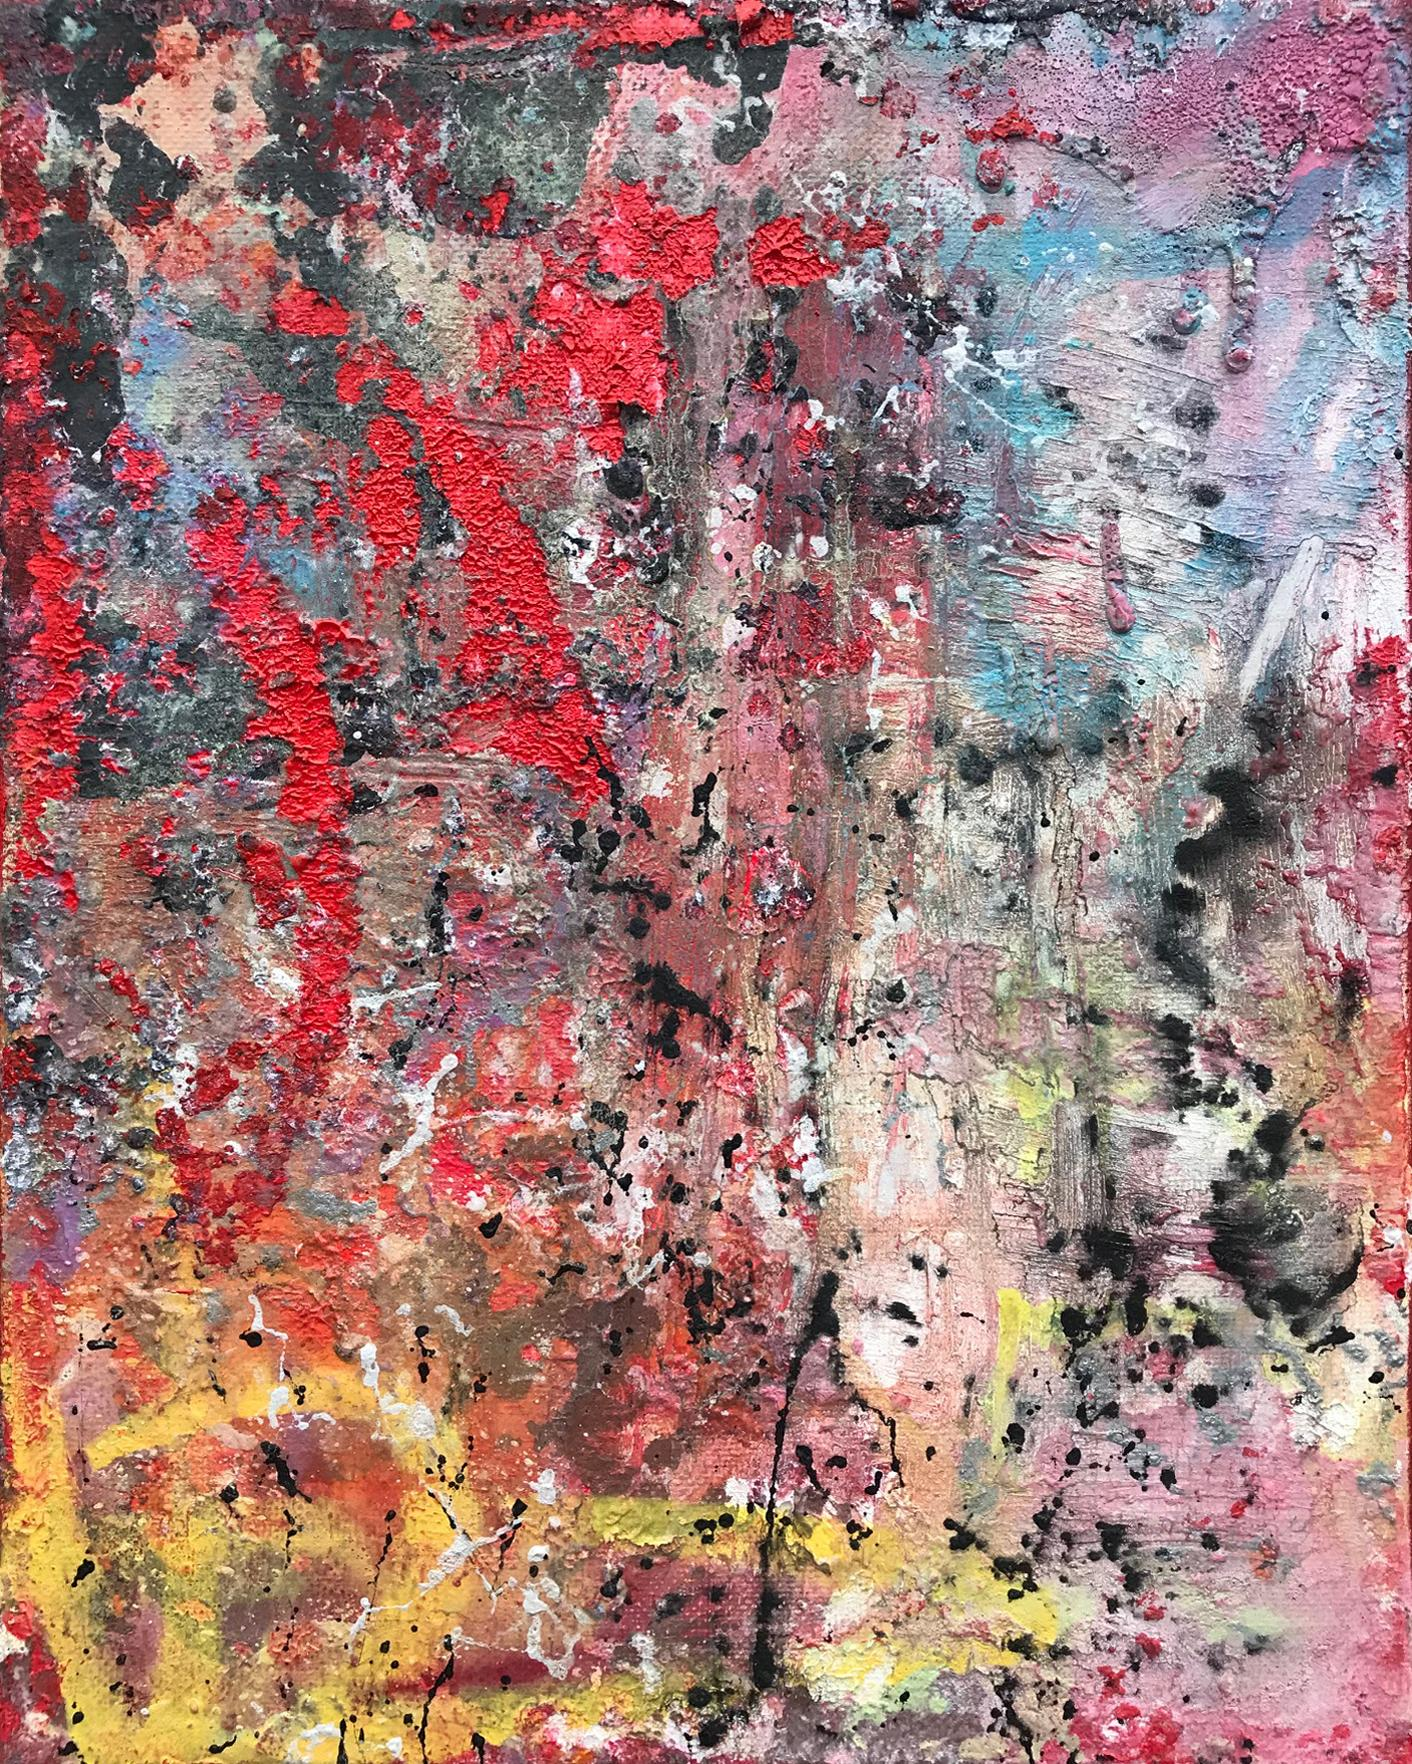 Burning Desire, 2019, Abstract Acrylic, Oil Resin & Spray Paint, Canvas, Signed